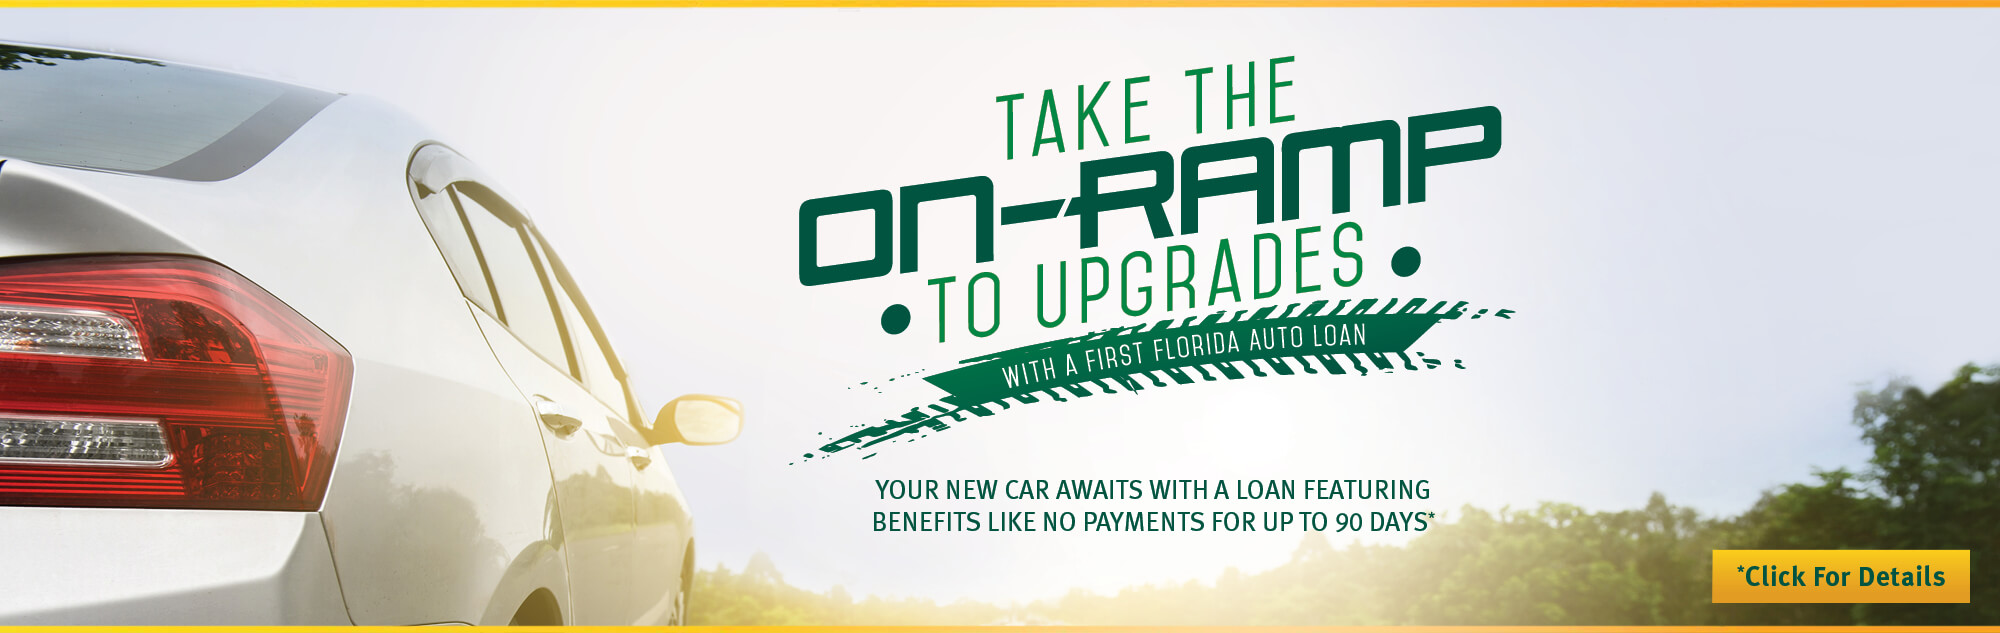 Your new car awaits with a loan featuring benefits like no payments for up to 90 days. Click for details